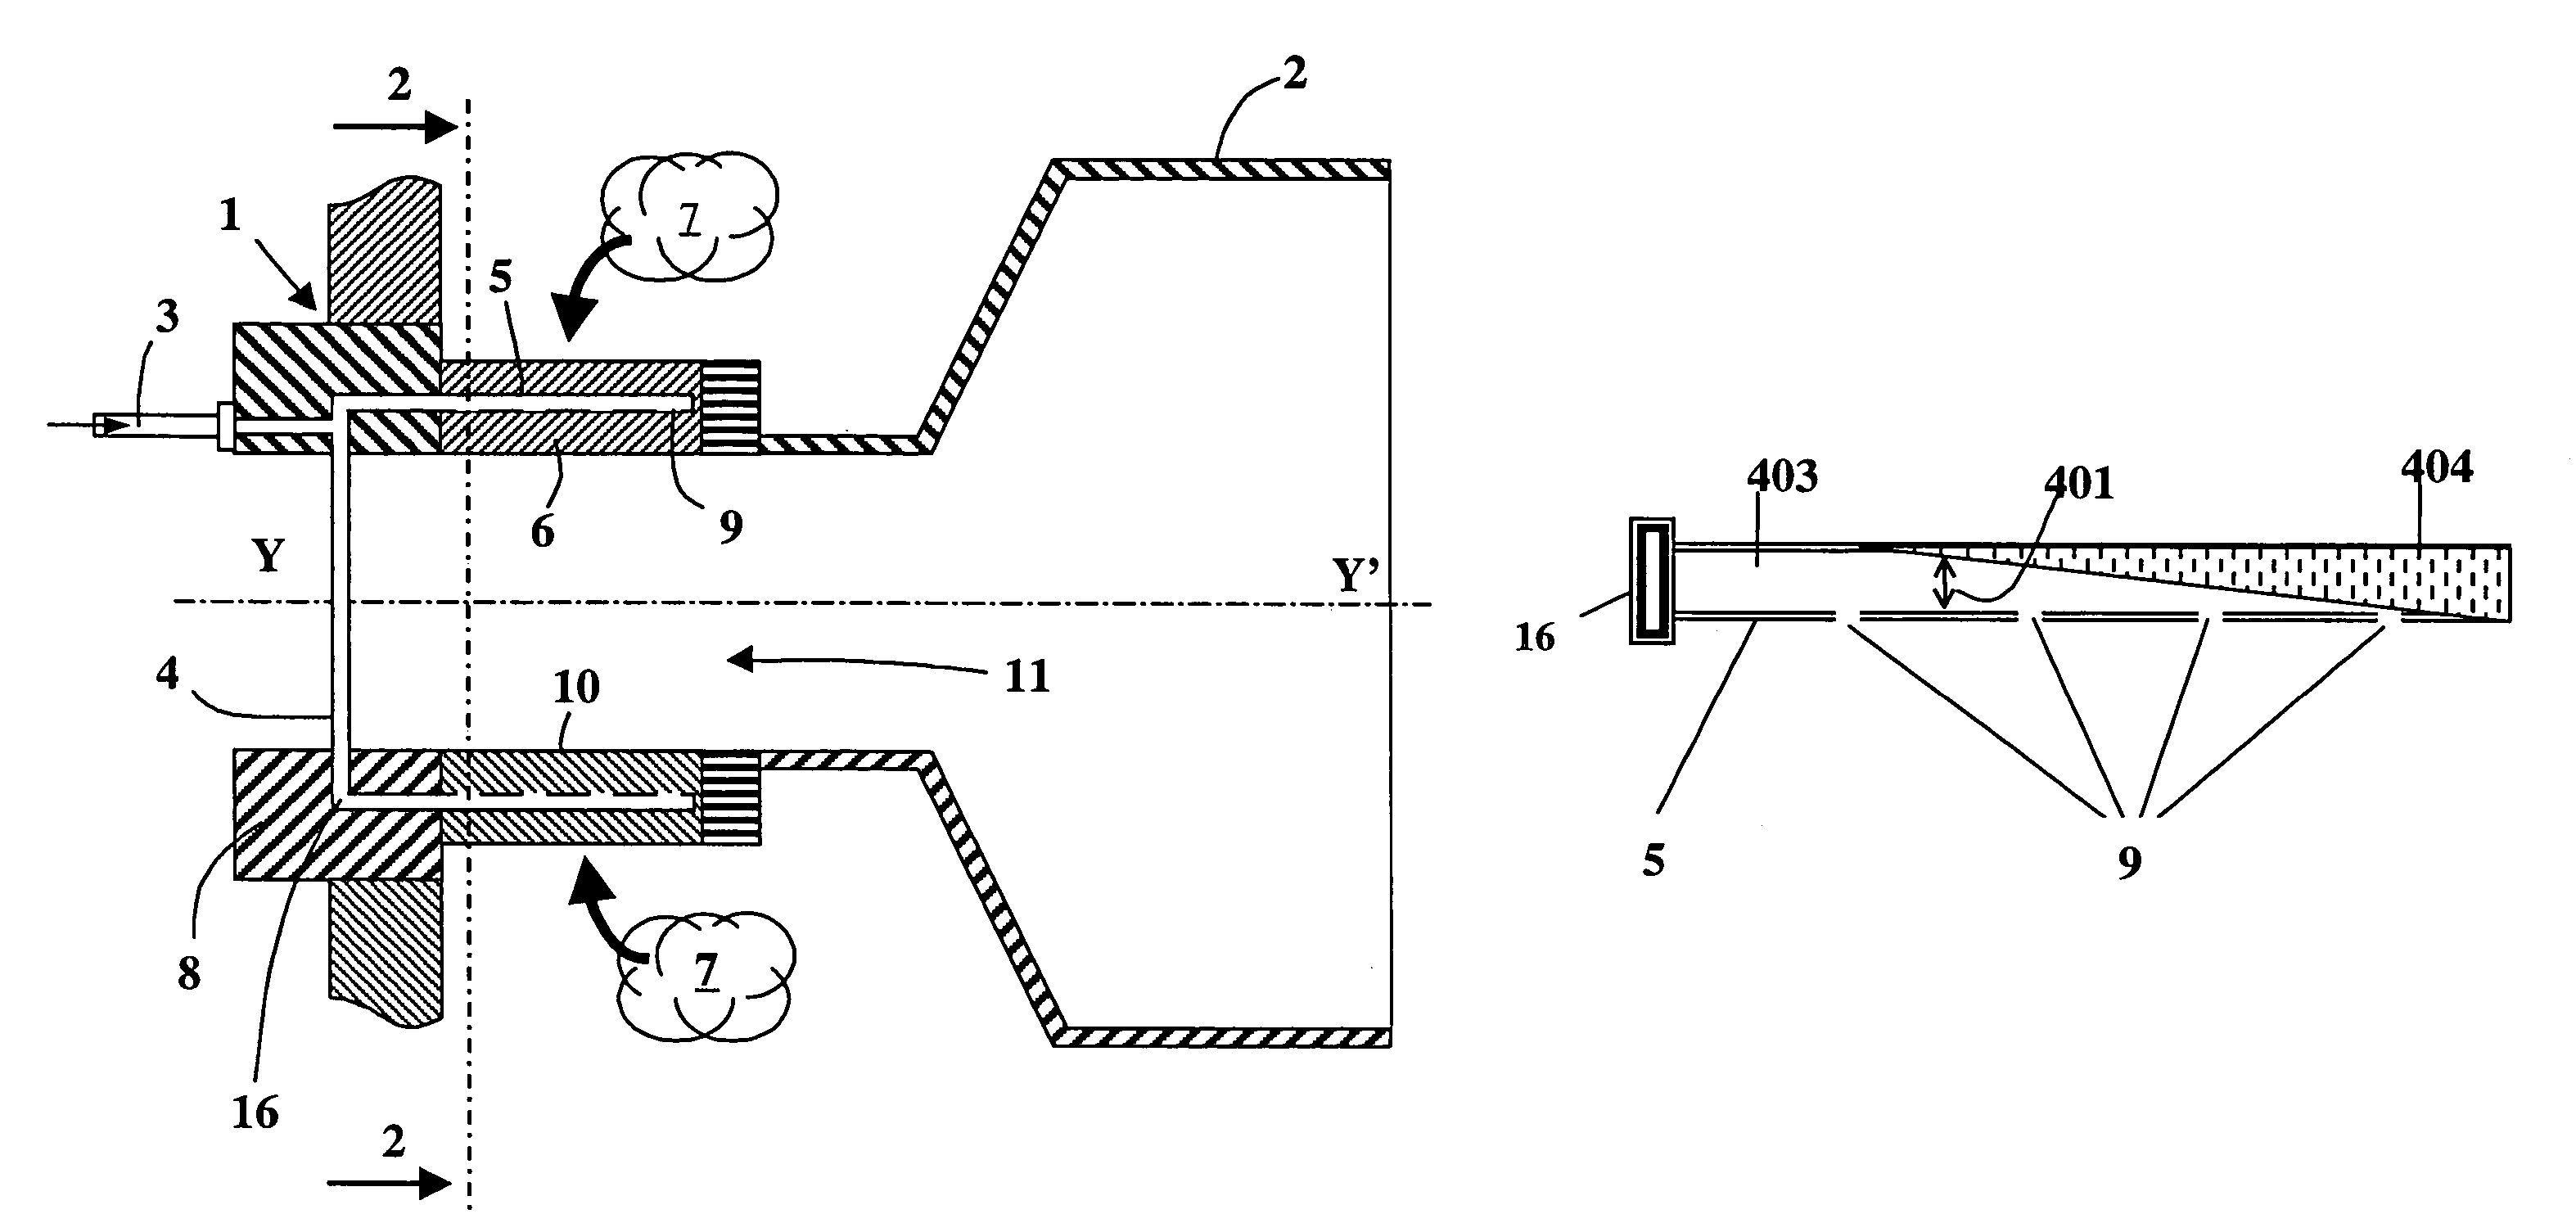 Patent Us 7249721 B2 Diagrammatical Image Of Injectors First Claim